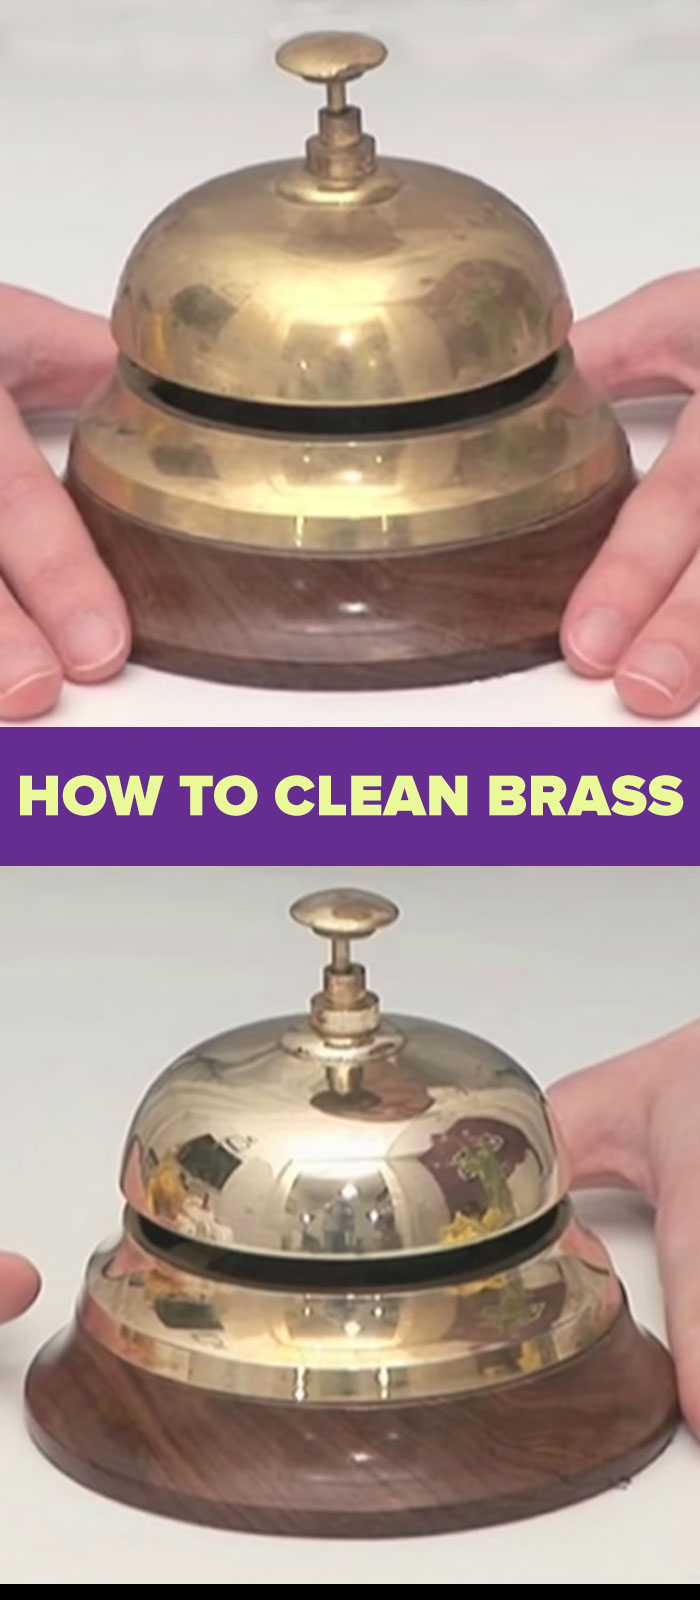 How to Clean Brass At Home - Ingredients for Homemade Brass Cleaning Recipe